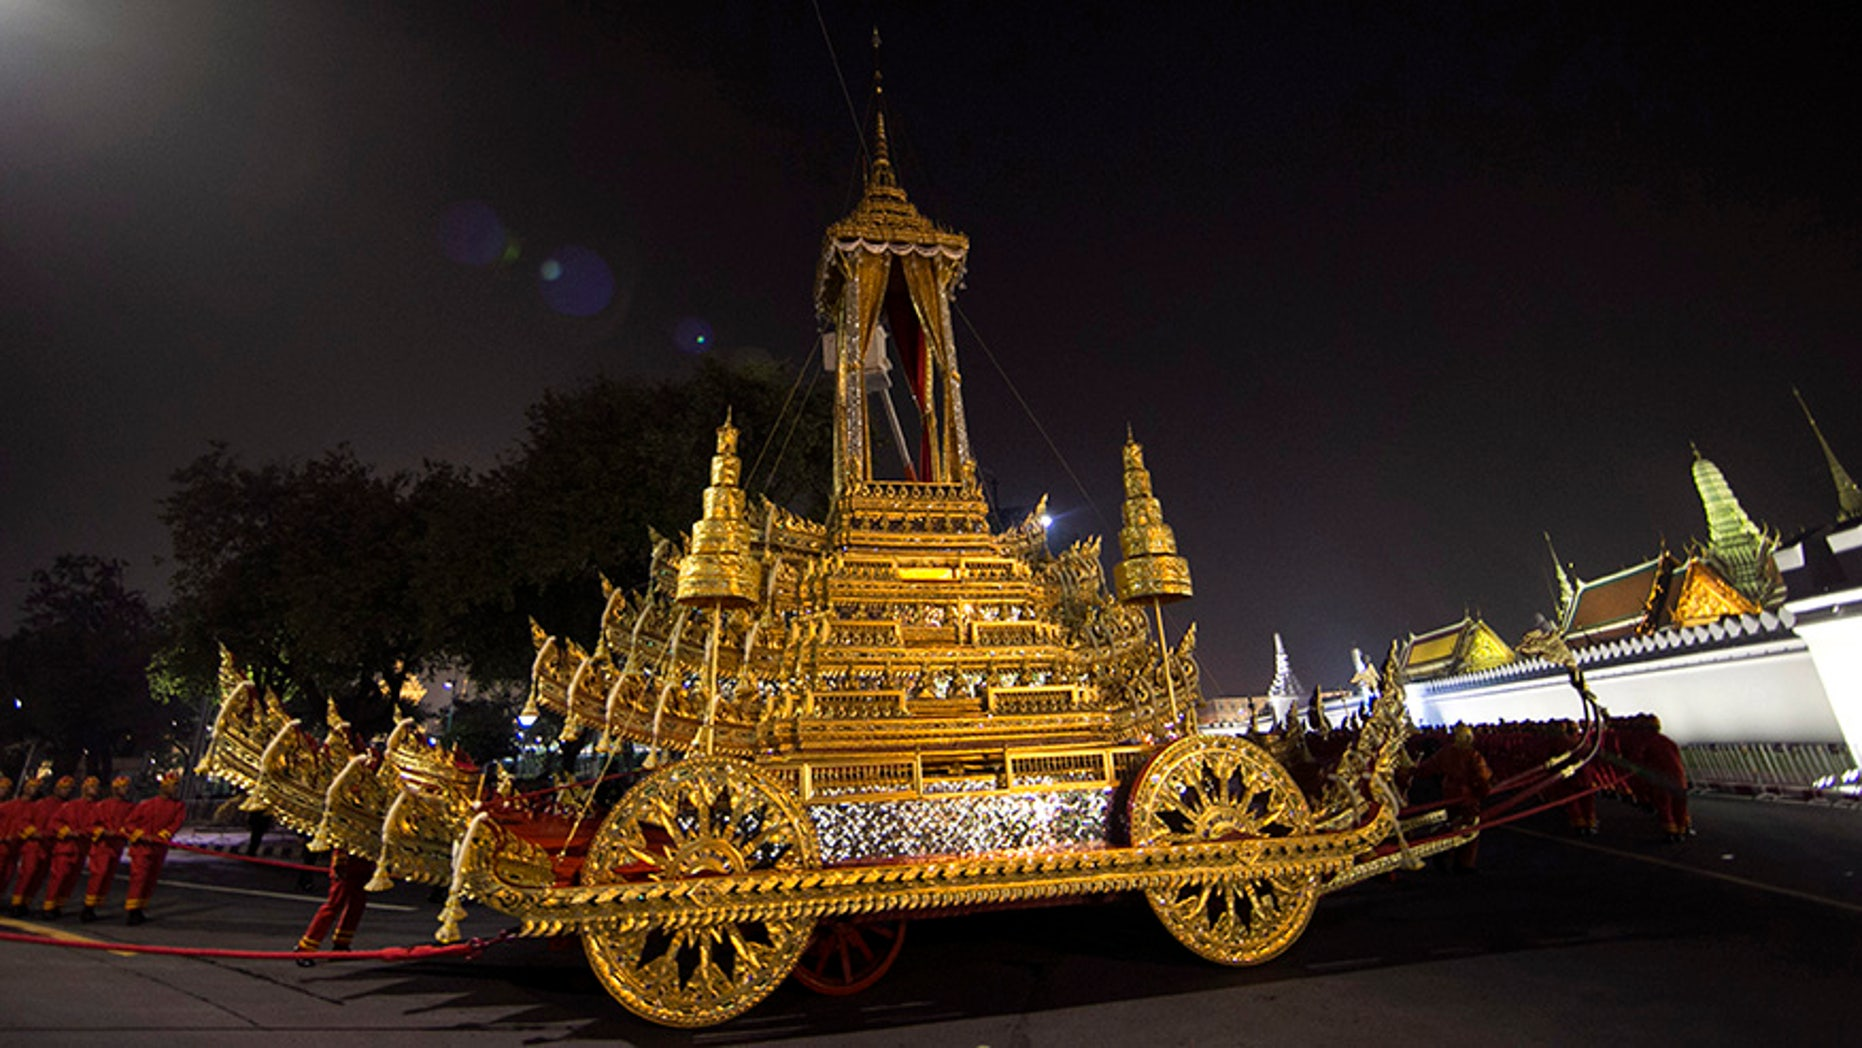 Thailand on Wednesday began an elaborate five-day funeral for King Bhumibol with his son, the new monarch, performing Buddhist merit-making rites in preparation for moving Bhumibol's remains to a spectacular golden crematorium